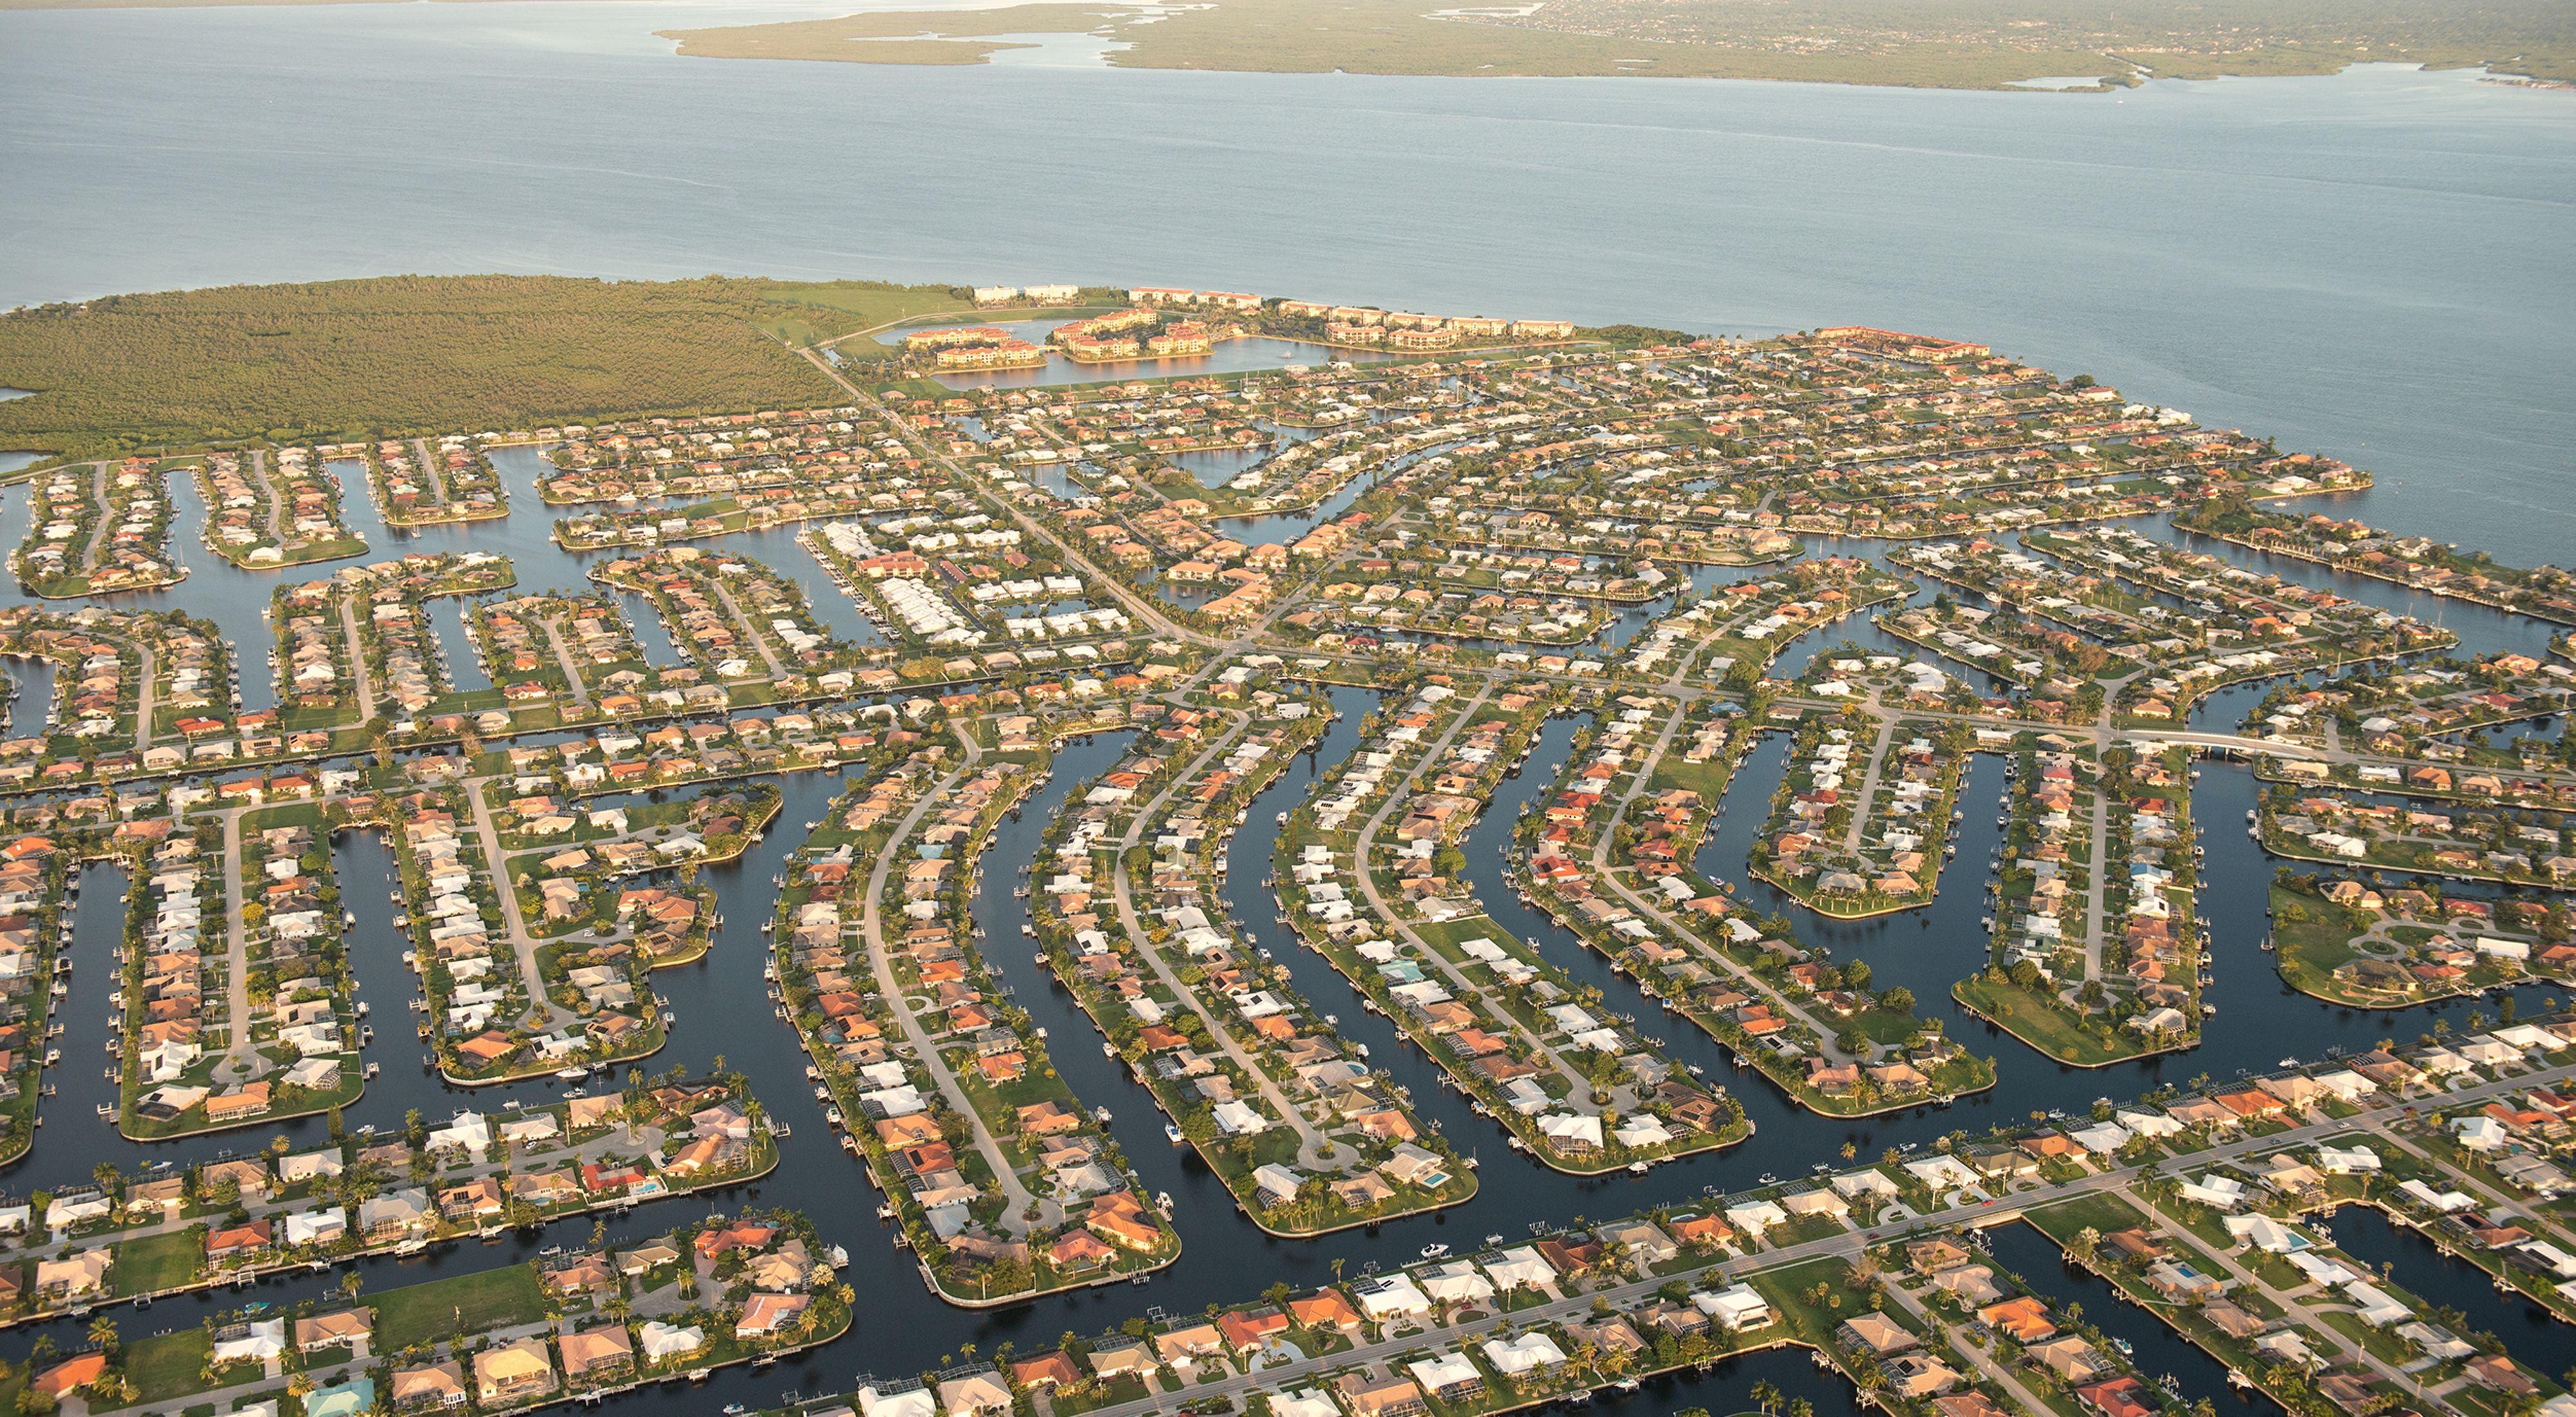 Aerial view of Punta Gorda, Florida showing densely packed neighborhoods surrounded by water.